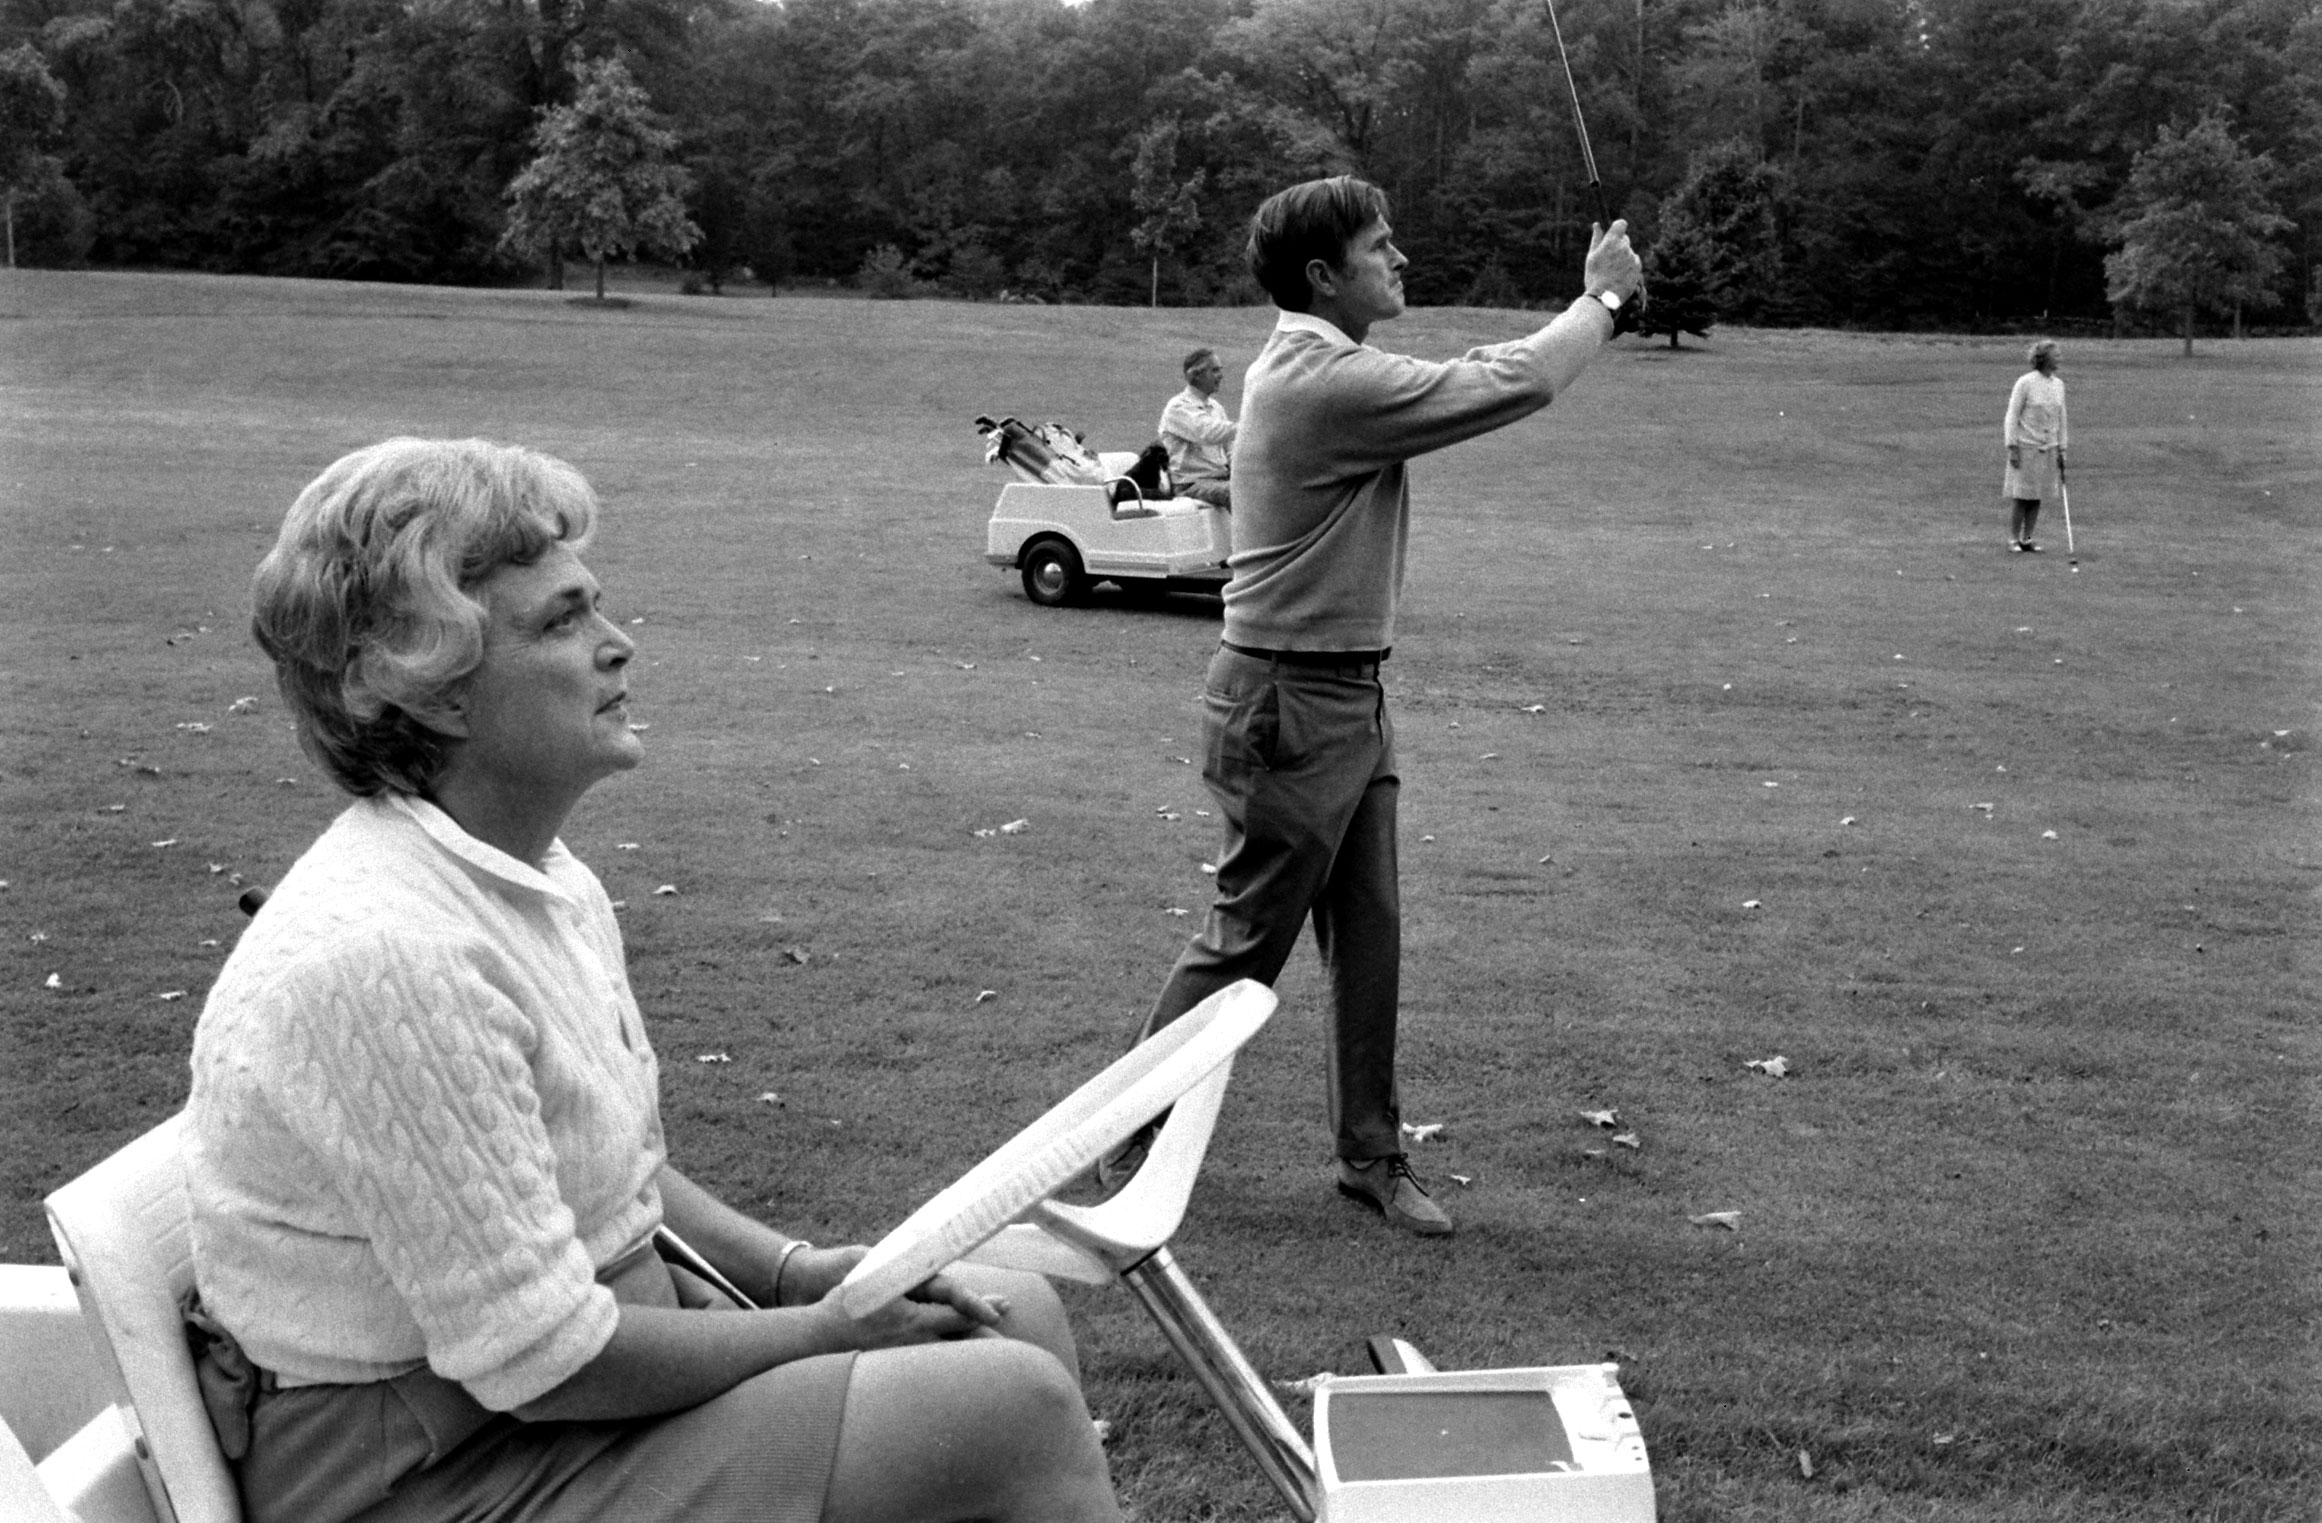 Future First Lady Barbara Bush on the golf course, 1971.